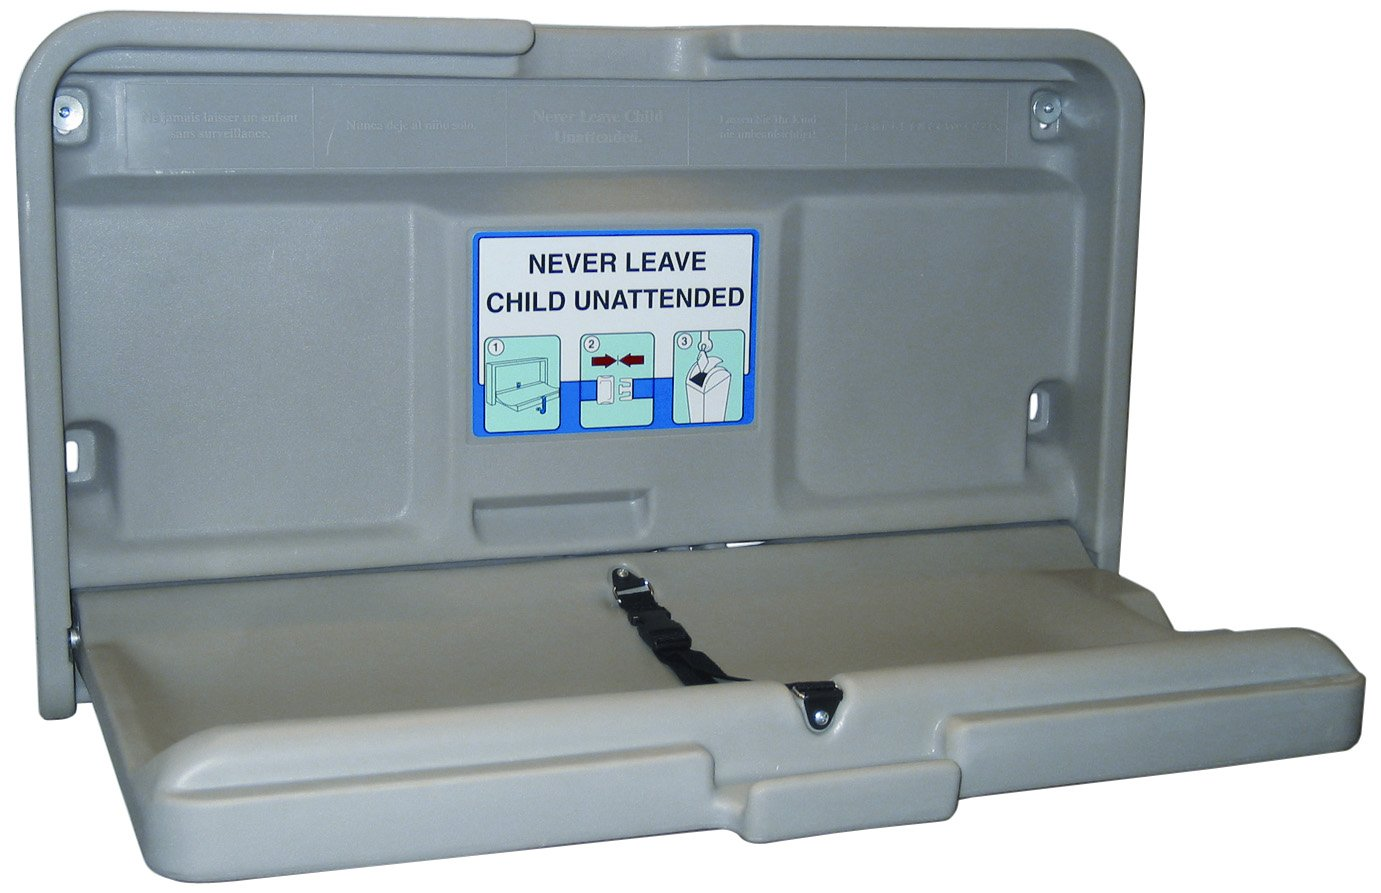 Bathroom Baby Changing Table. Impact 1170 Gray Baby Changing Table 36 Length X 20 12 Width X 4 12 Height Industrial Lavatory Baby Changing Stations Amazon Com Industrial